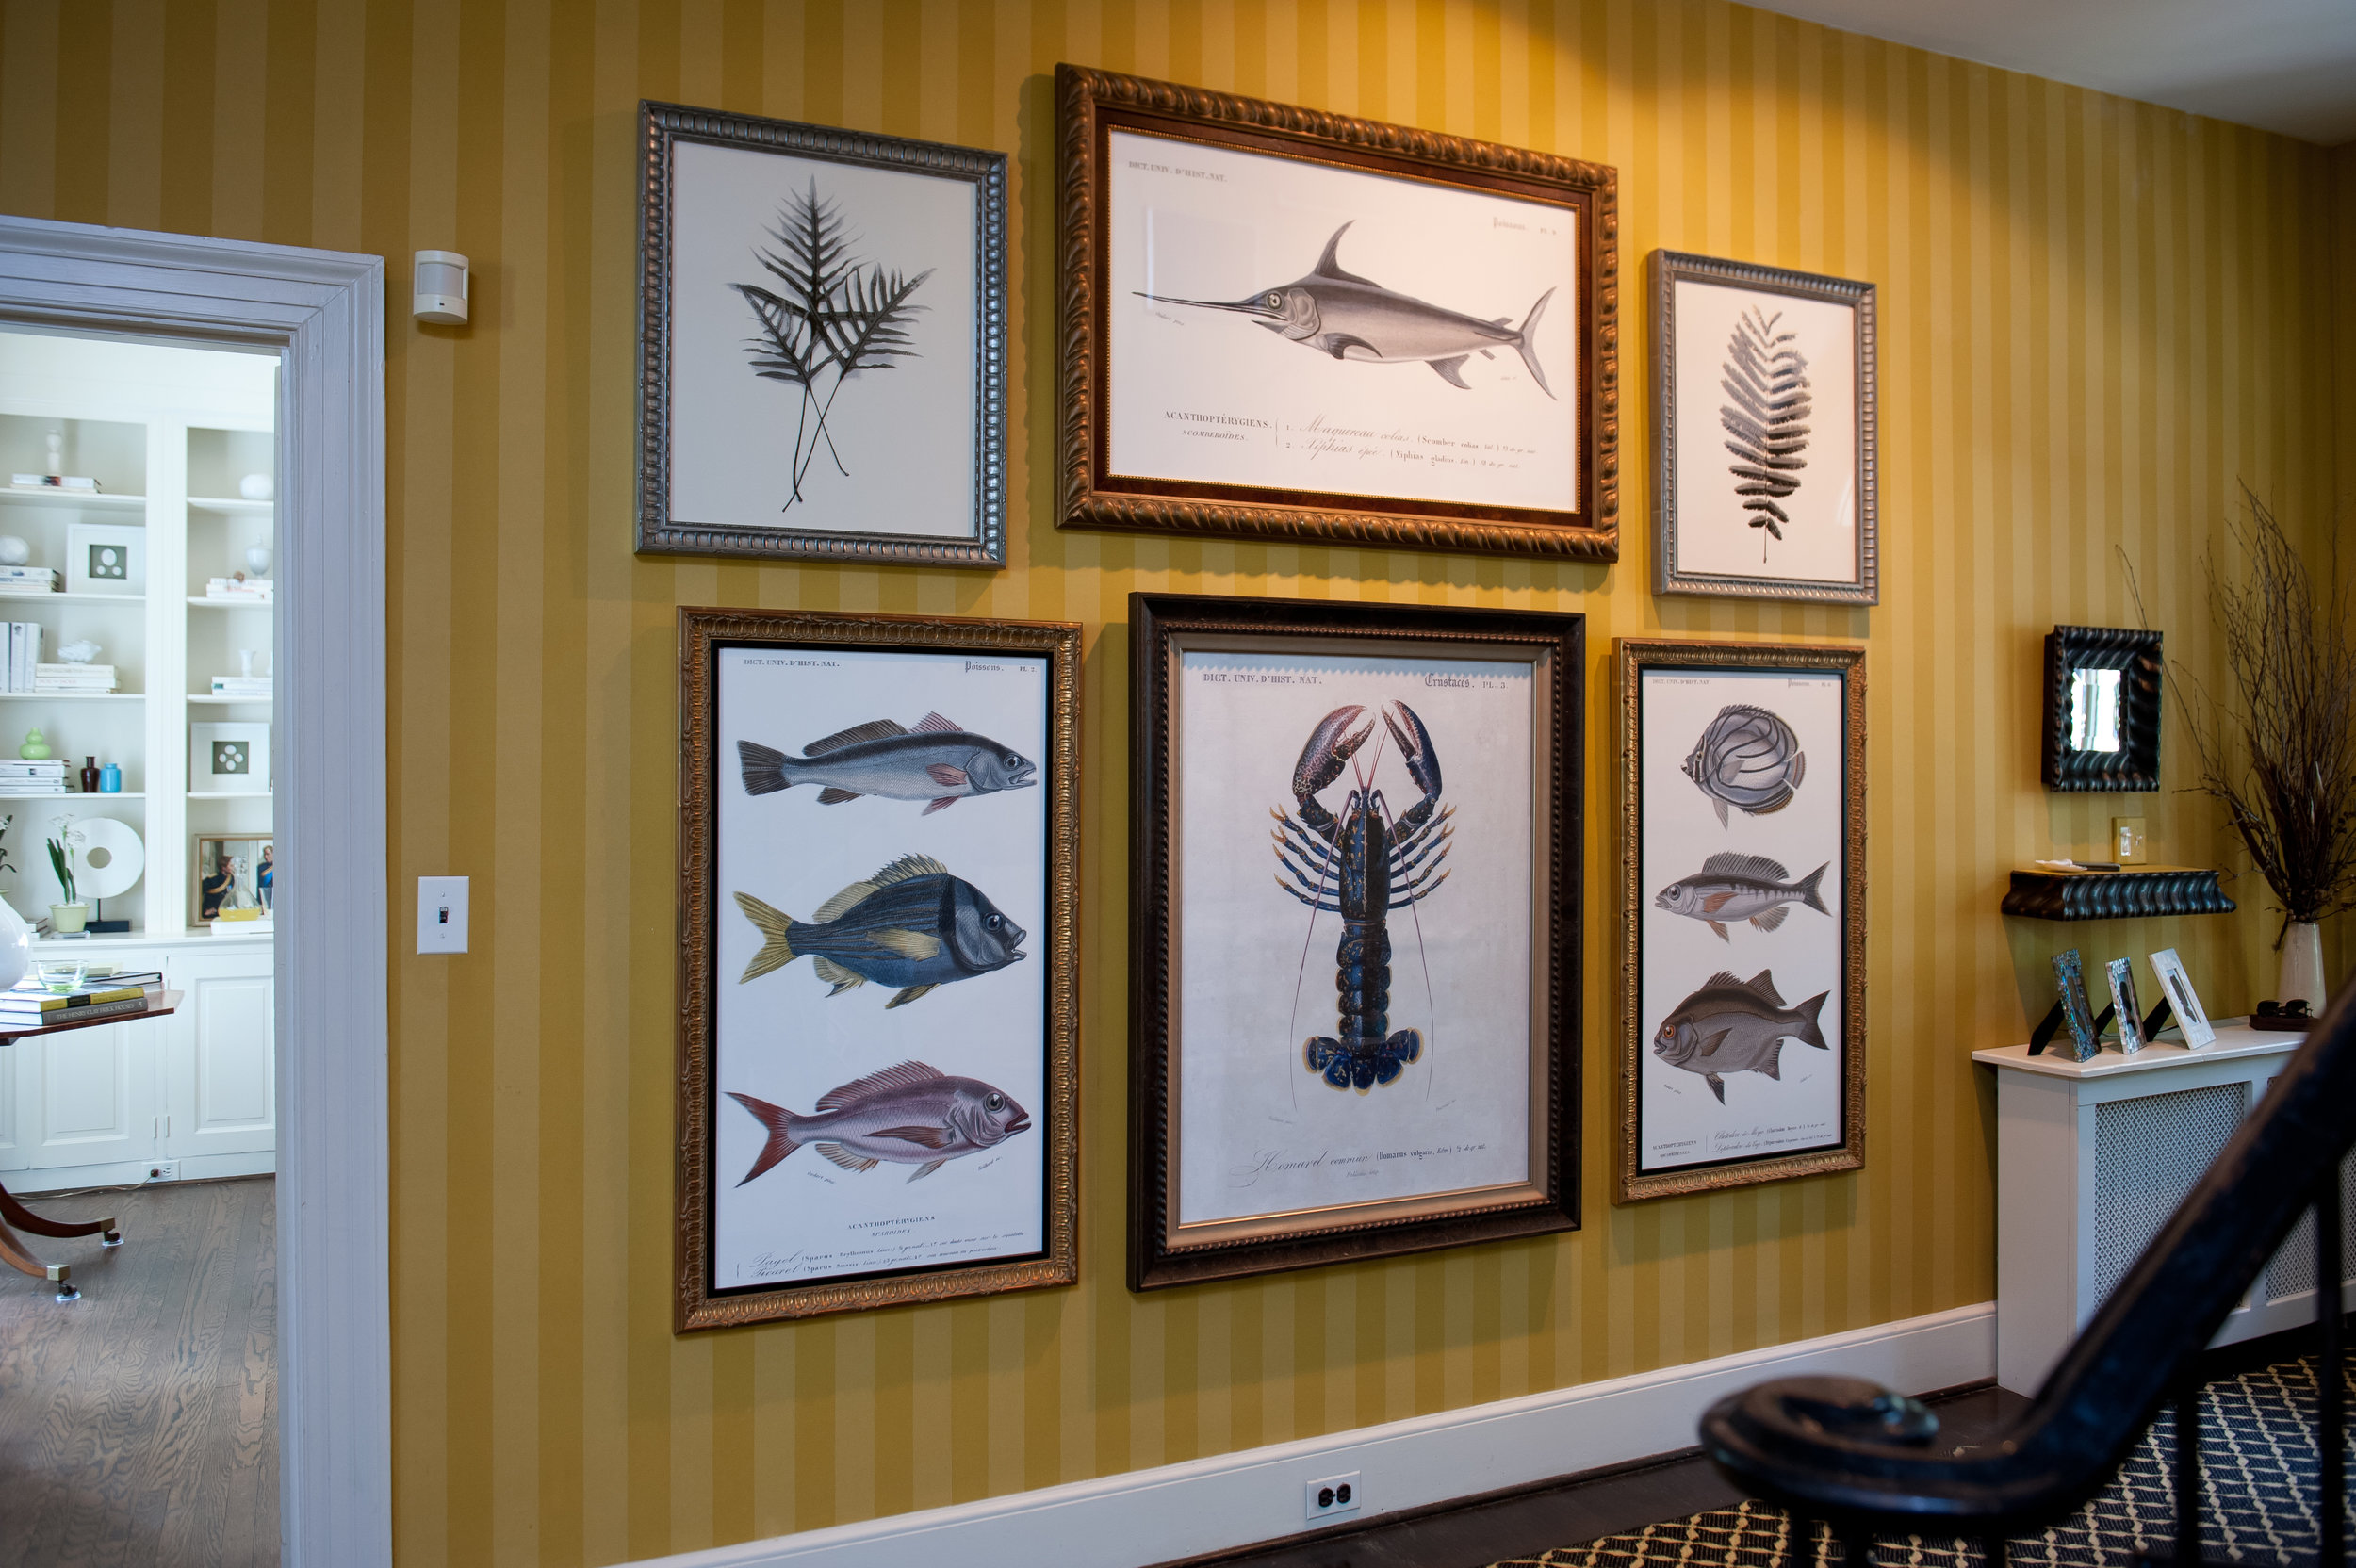 adventures on land & sea - As a house tour participant, PALLADIOwas asked to decorate this unusualhallway in an old Chestnut Hill house.With stylized art production & custom framing, PALLADIO paid tribute to bothlife under the sea and on terra firma.